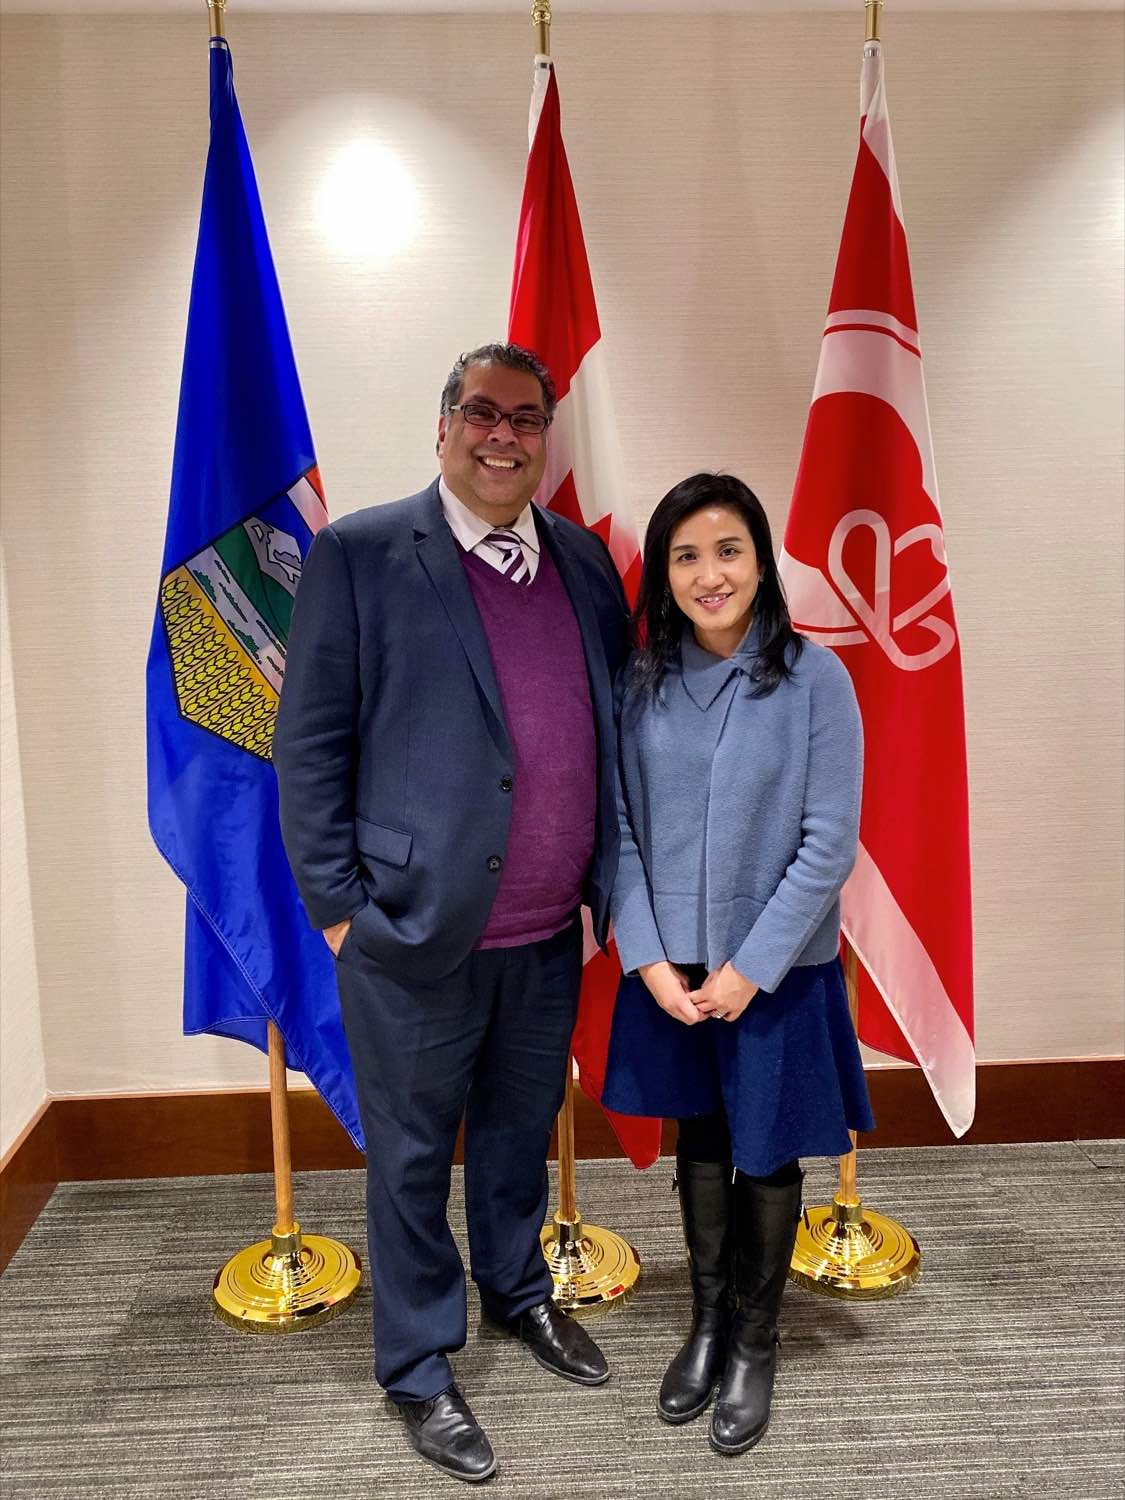 Ms Mo paid a courtesy call on Calgary Mayor Naheed Nenshi during her stay in Calgary on November 27.